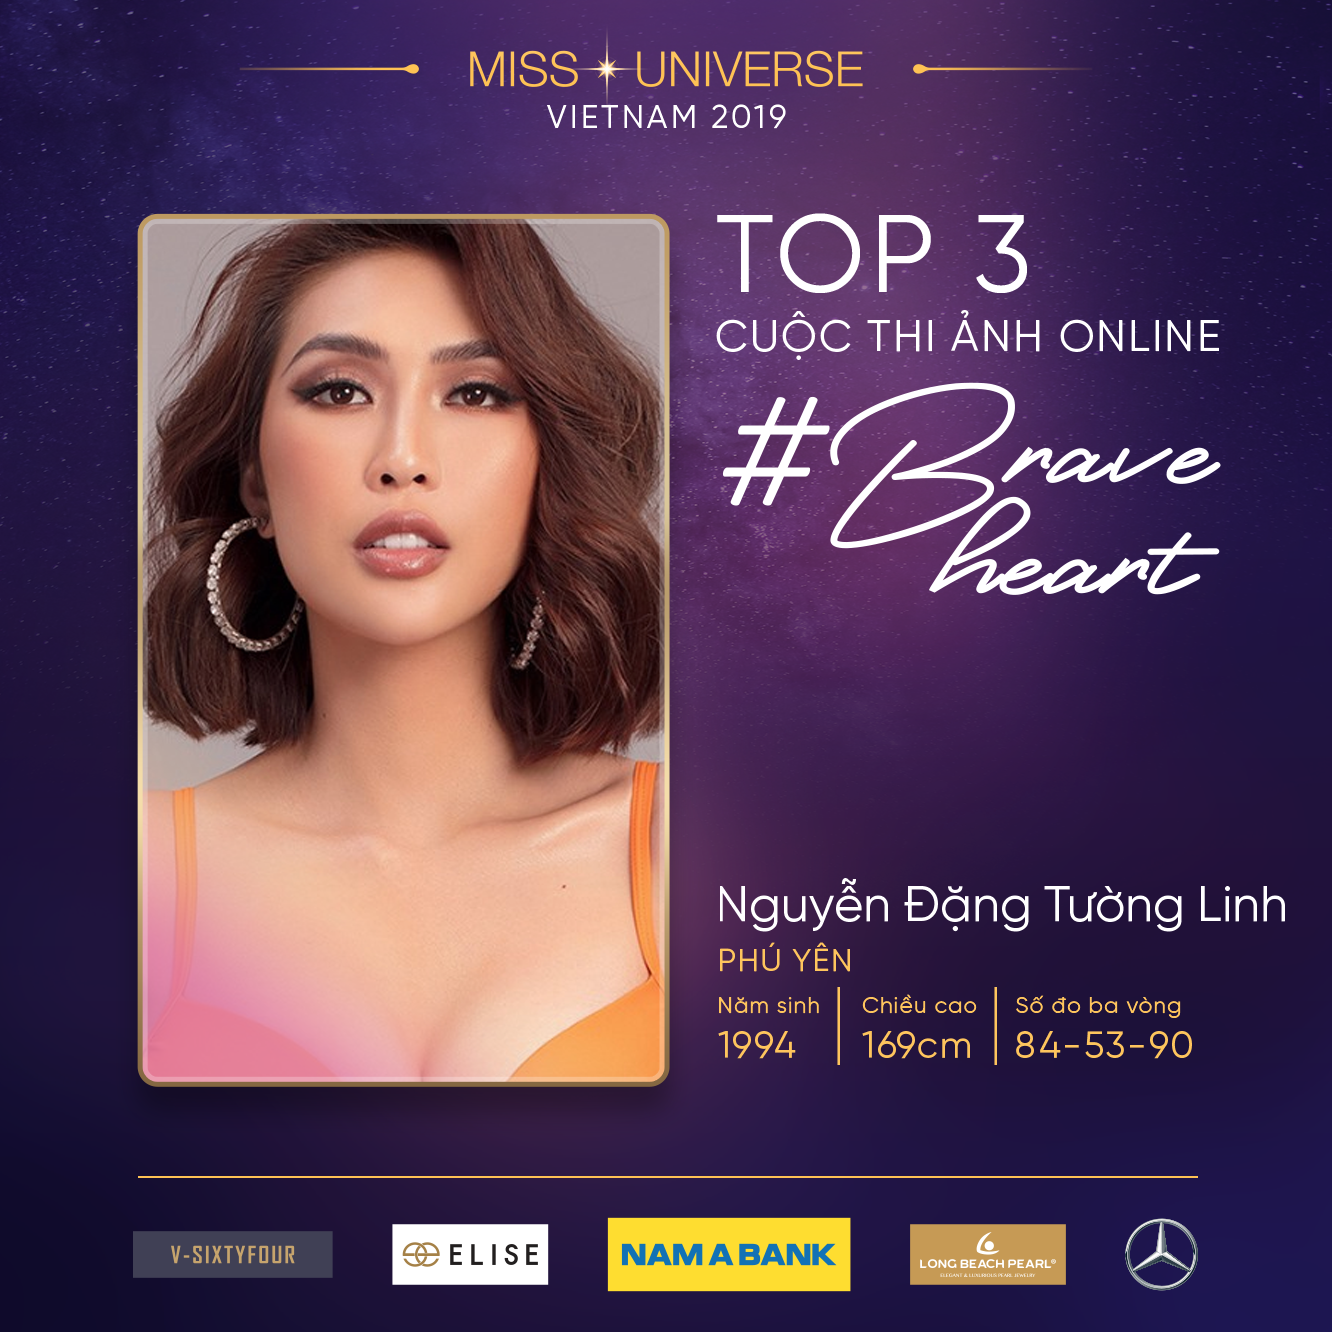 """thuy van gianh chien thang tai cuoc thi anh """"miss universe online"""" hinh anh 2"""